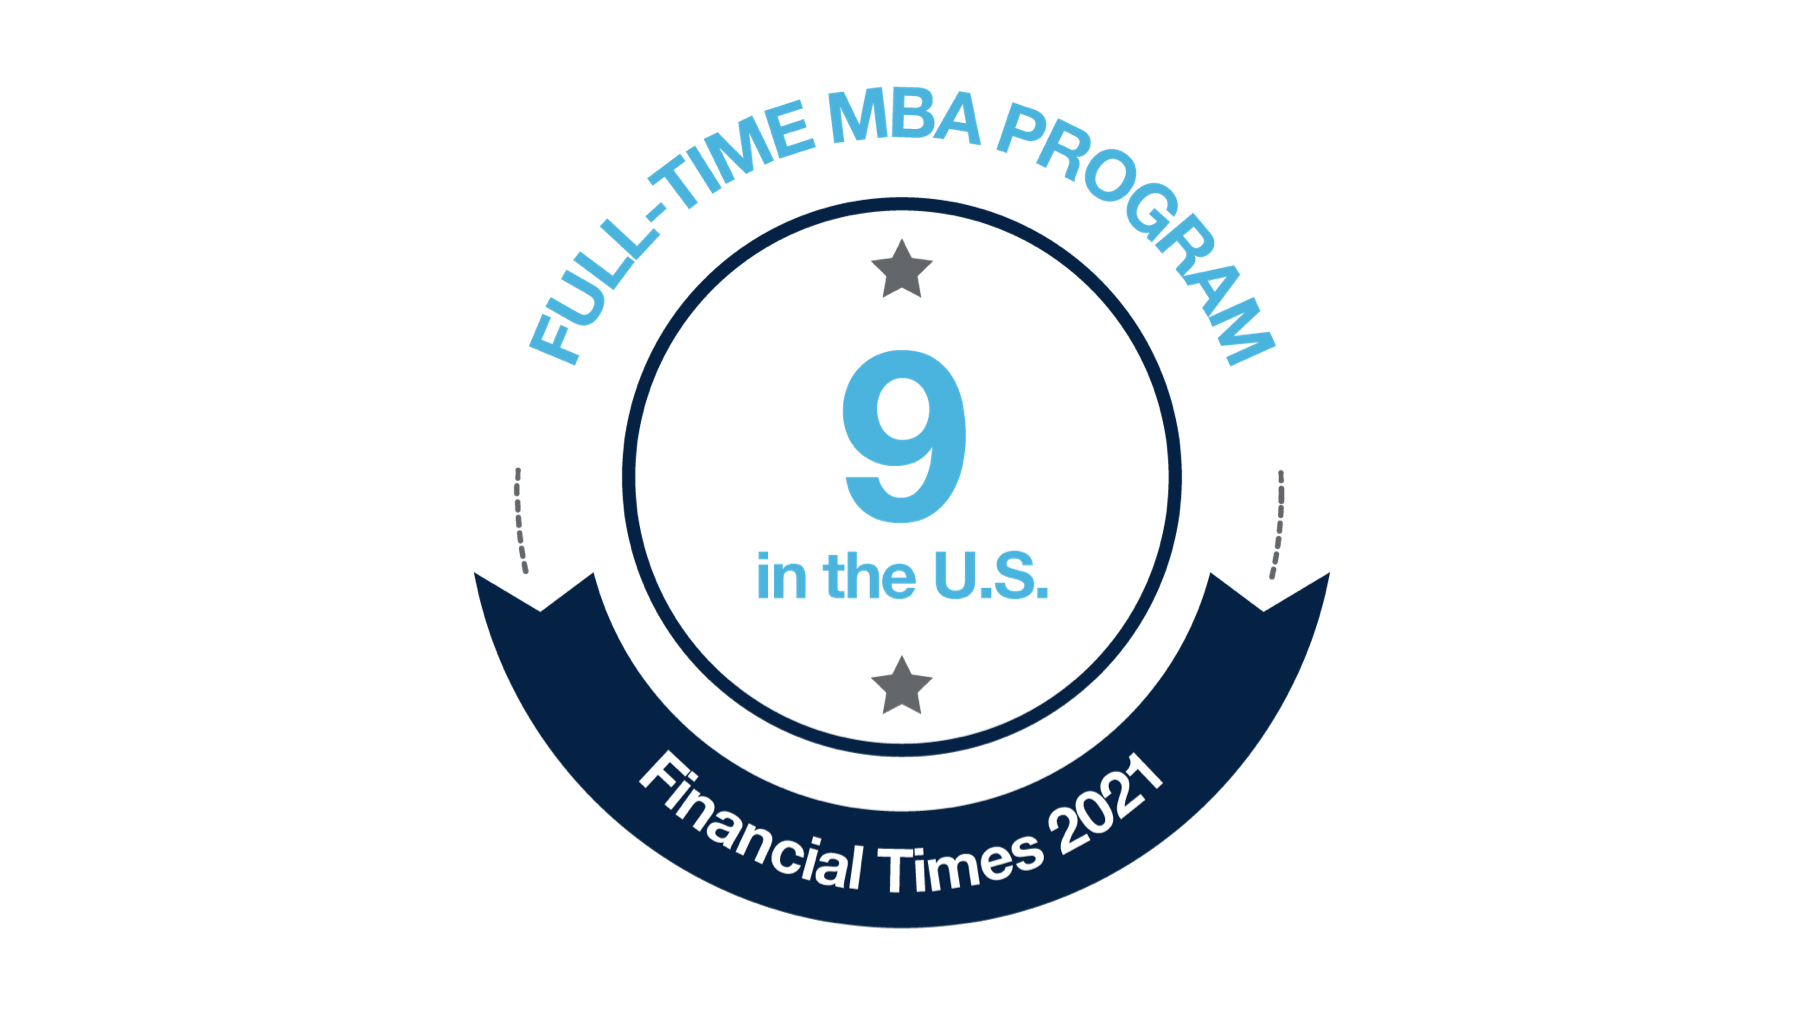 MBA ranks 9th in U.S. by Financial Times